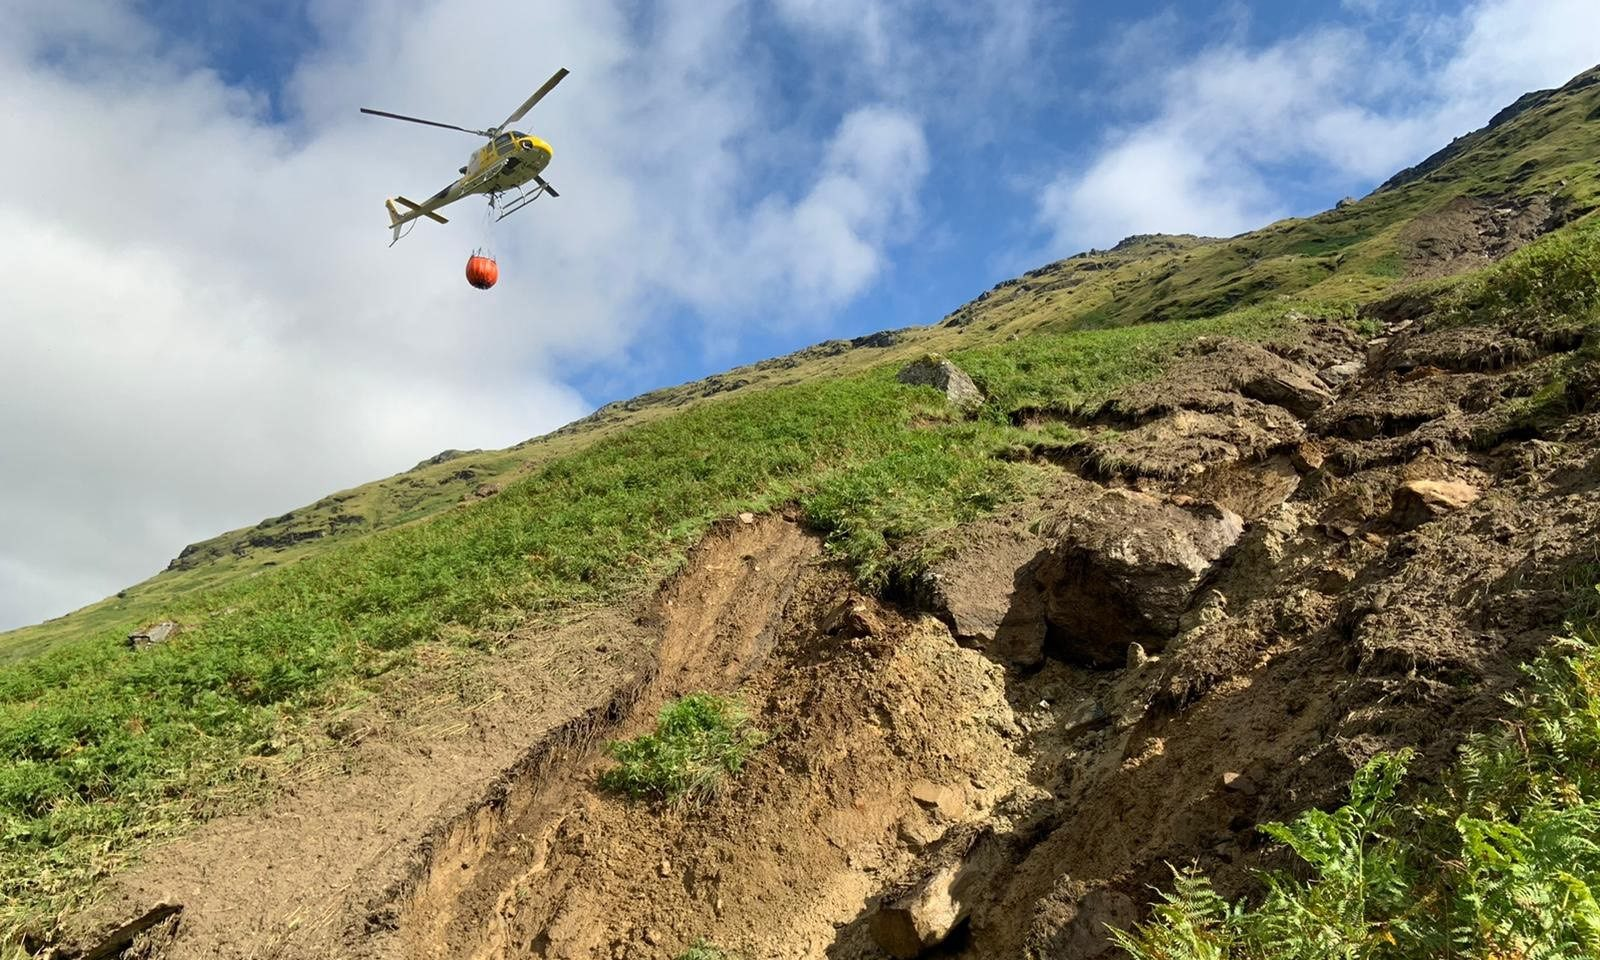 The helicopter bringing water bags to site to help move large 100 tonne boulder to safety